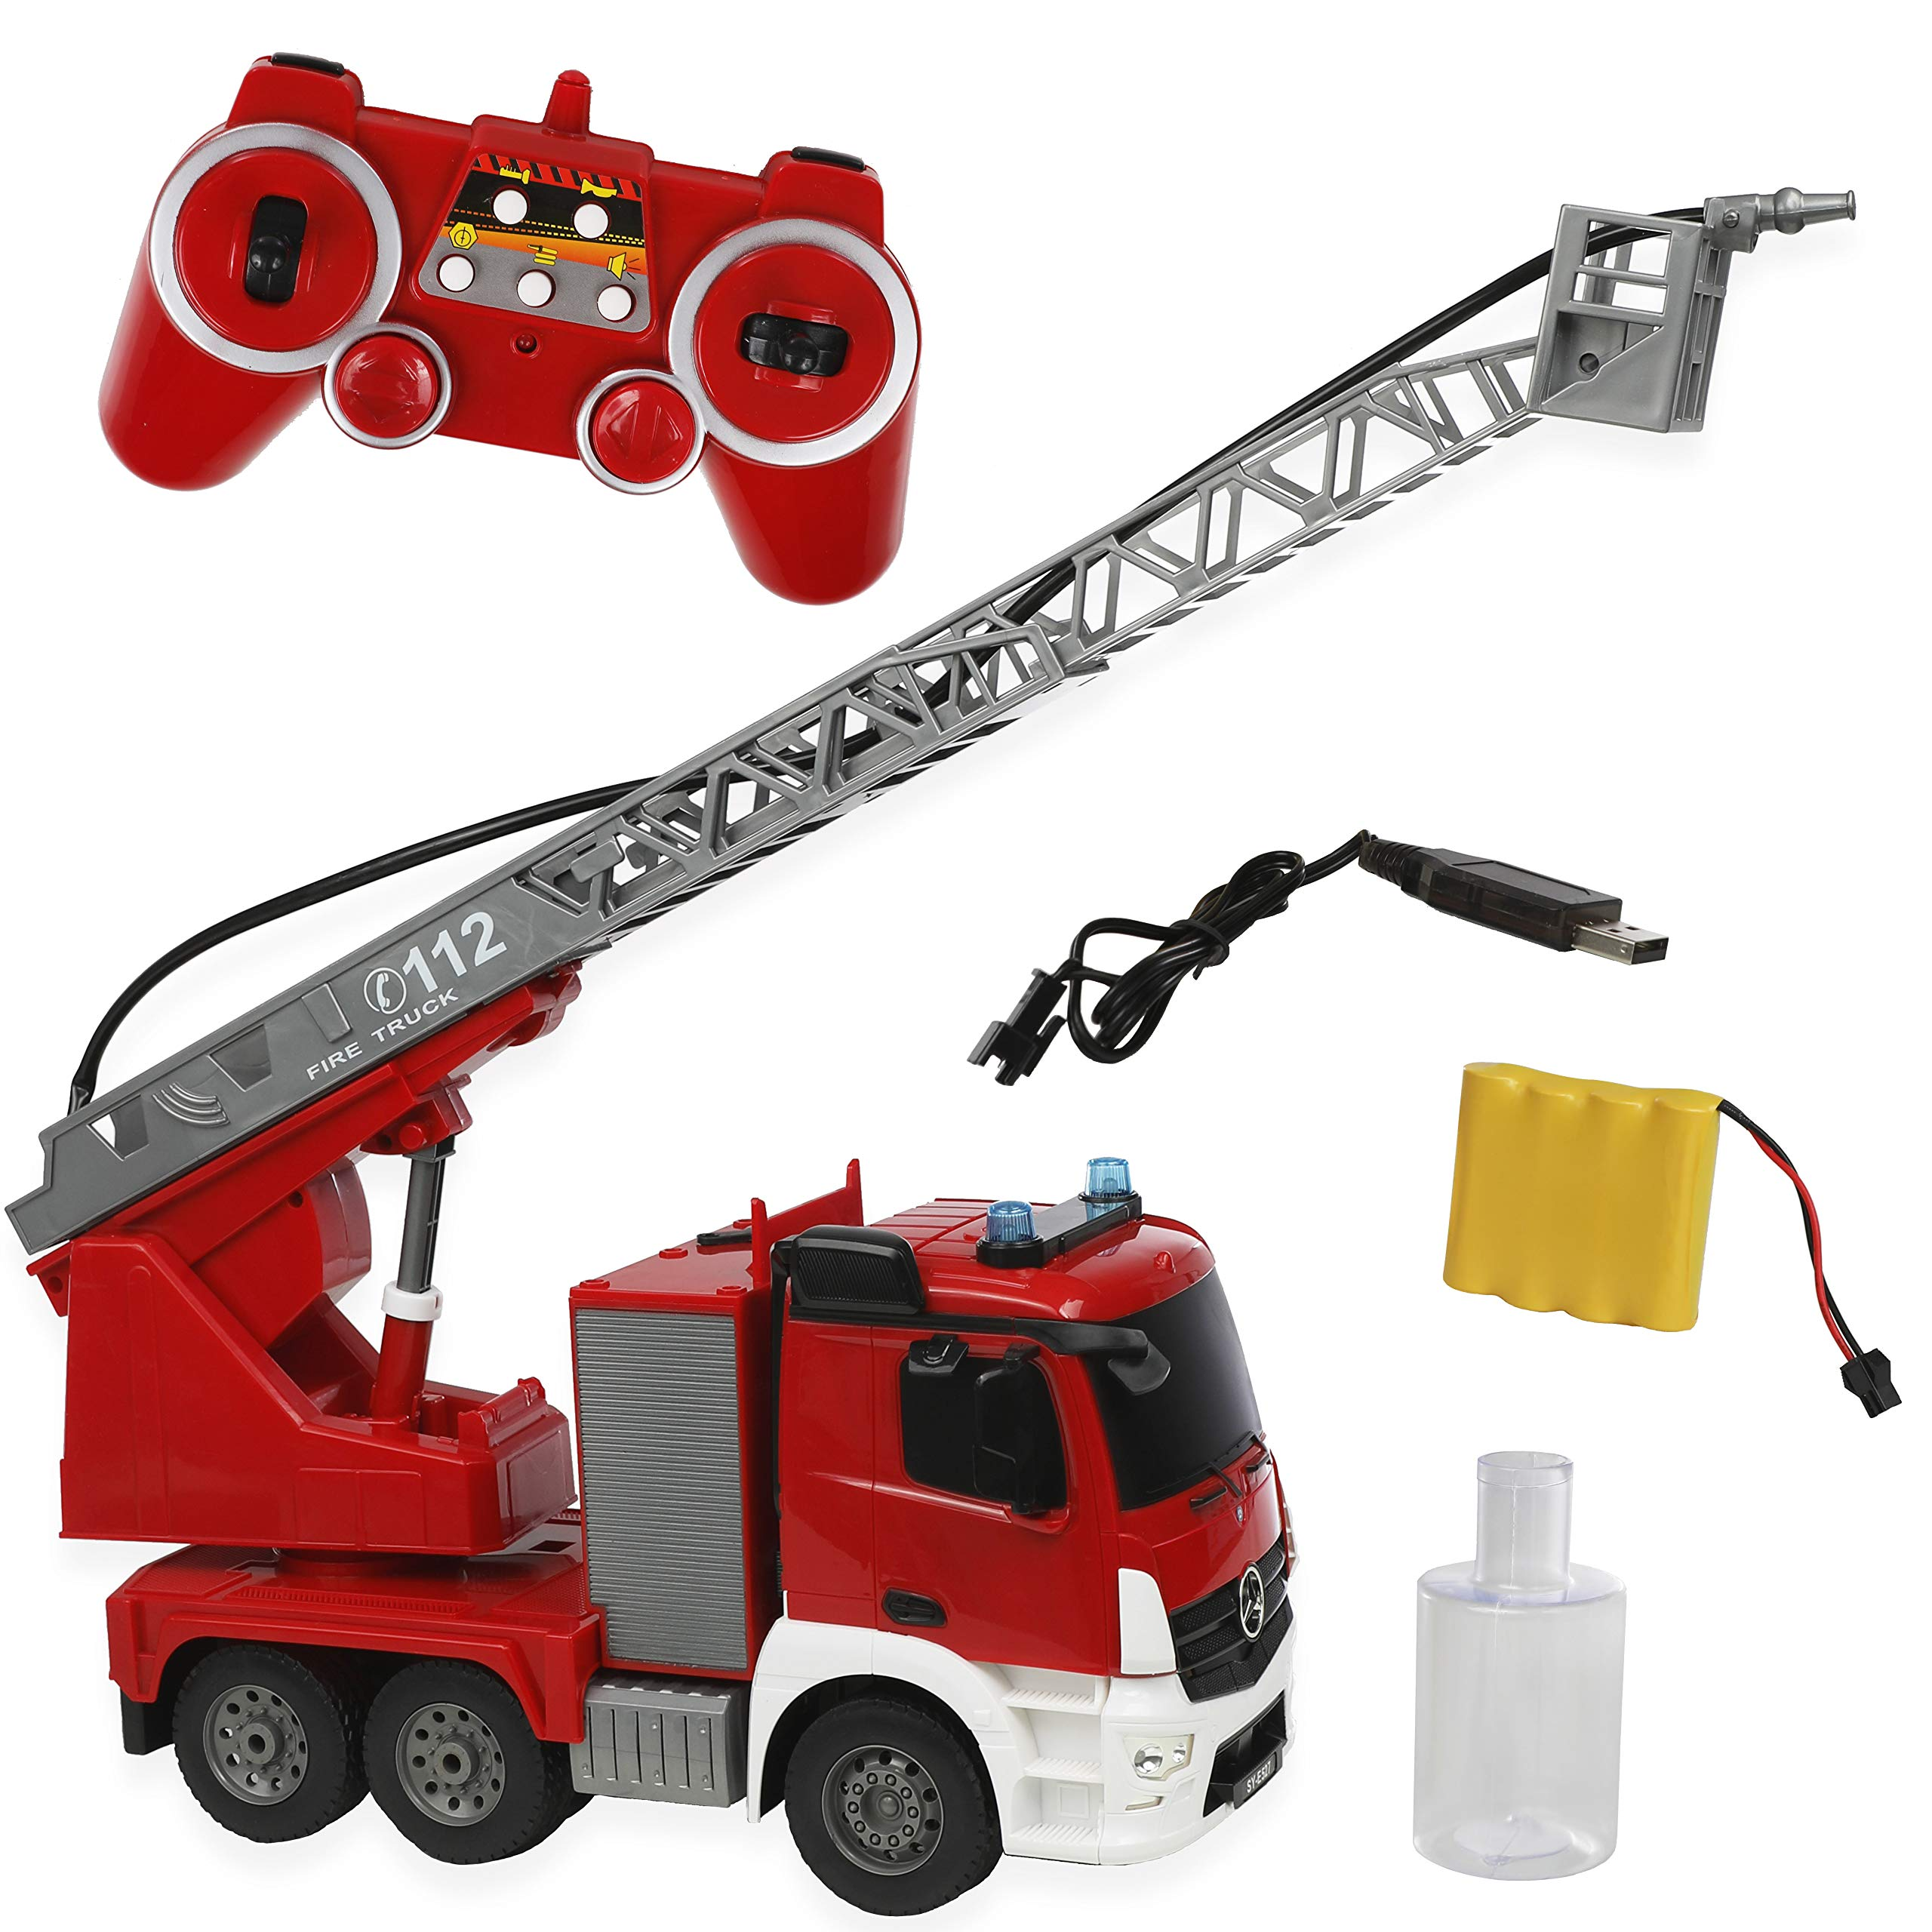 DOUBLE E Remote Control Fire Truck 10 Channel Water Pump 18 Inch Extendable Ladder Fire Engine with Working Sounds Lights Rechargeable 2.4GHz Toy Trucks for Kids